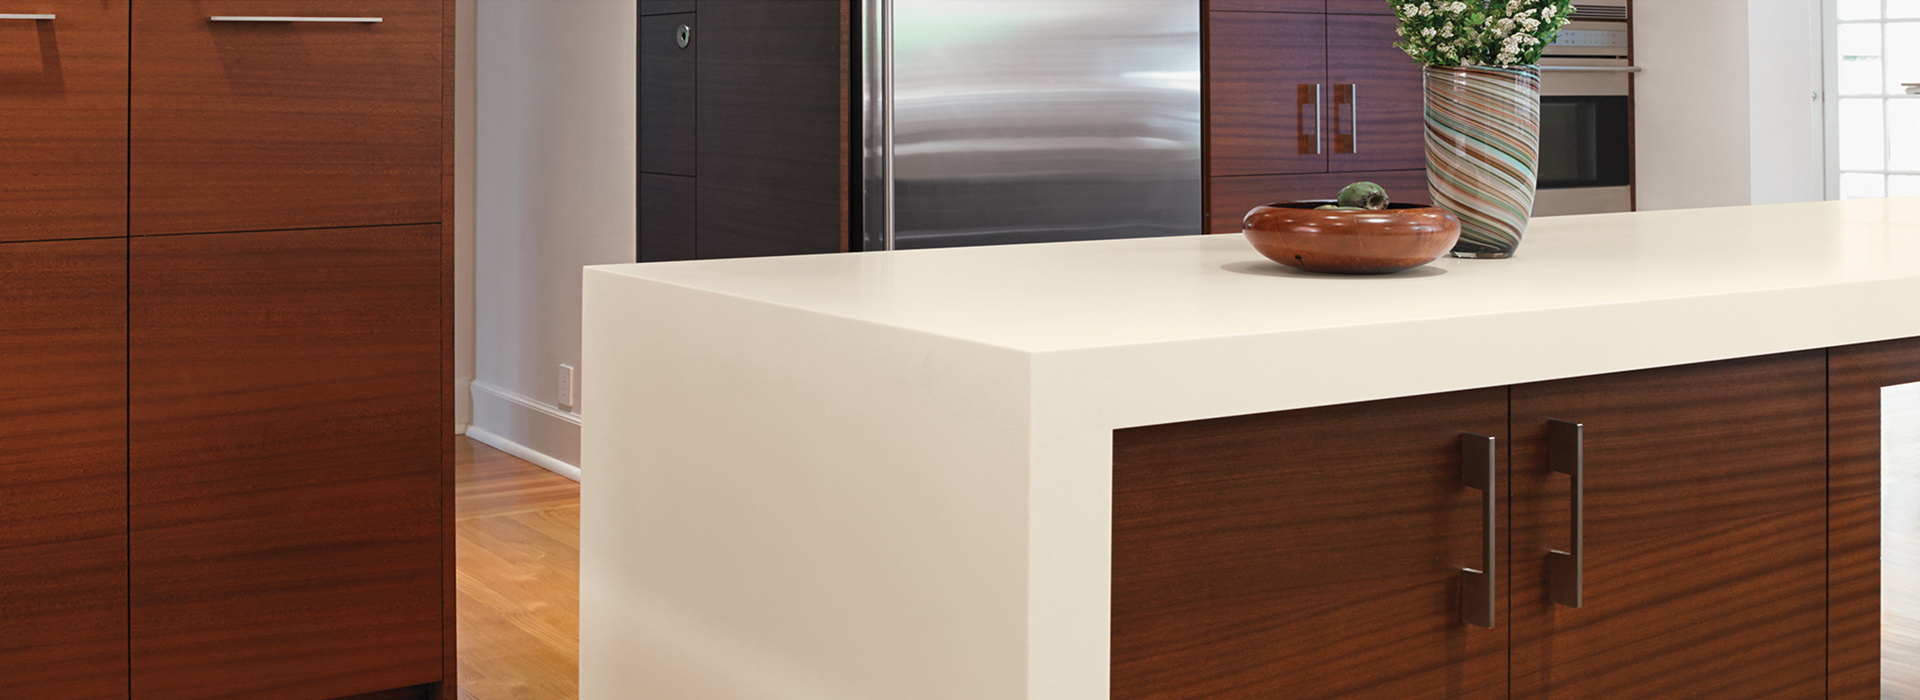 Flowers and bowl on kitchen countertop 773 Luna Sail White Formica Solid Surfacing